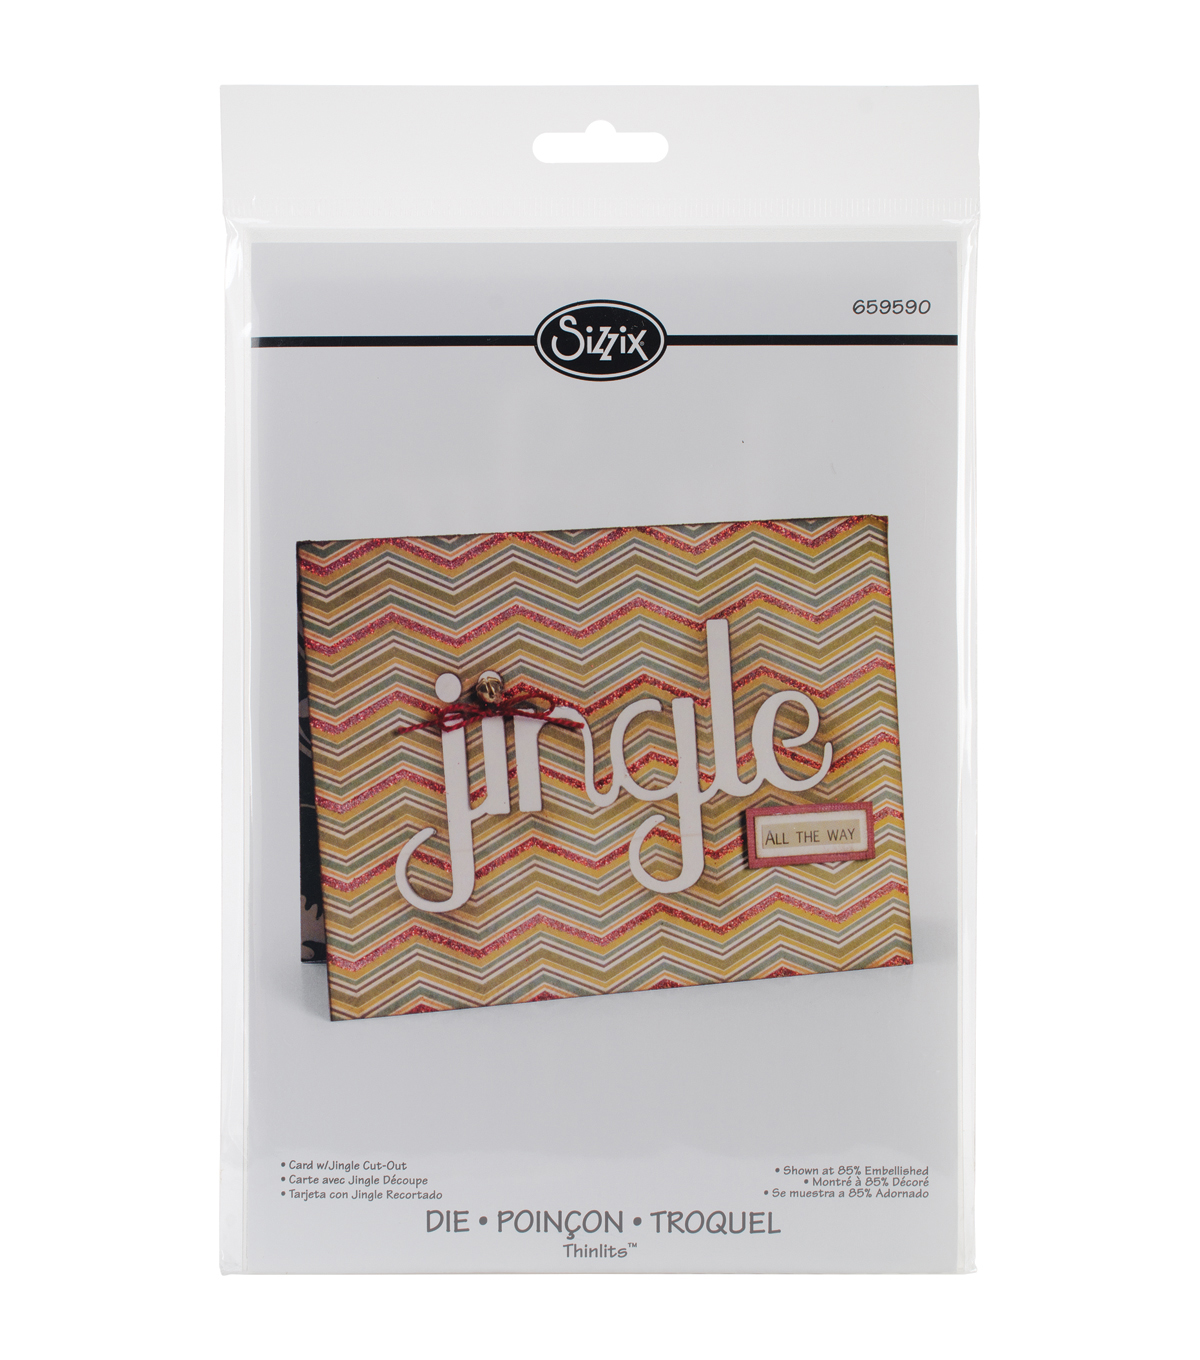 Sizzix Thinlits Jingle Cut-Out Card Die